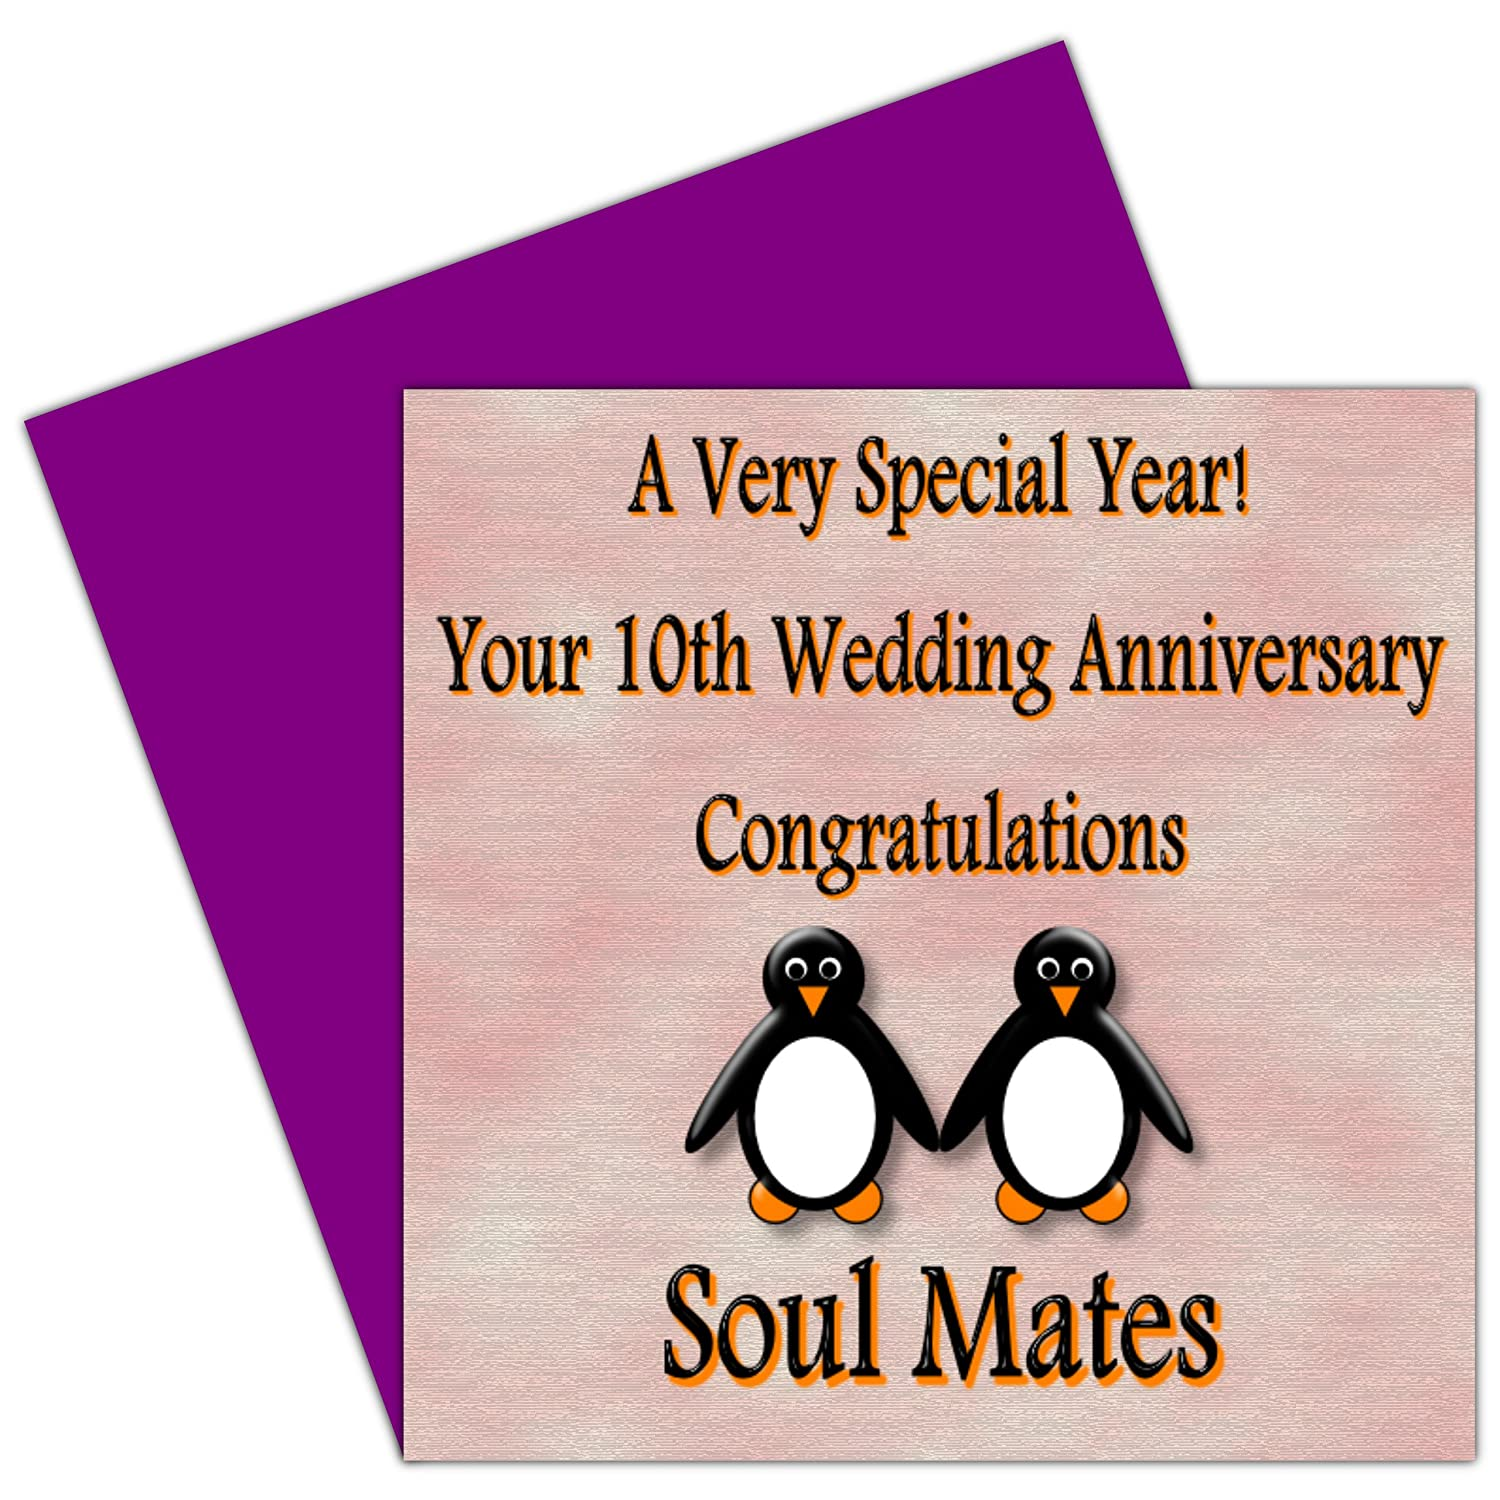 On your 10th wedding anniversary card 10 years tin anniversary on your 10th wedding anniversary card 10 years tin anniversary rosie posie penguin design for family friends amazon office products kristyandbryce Images